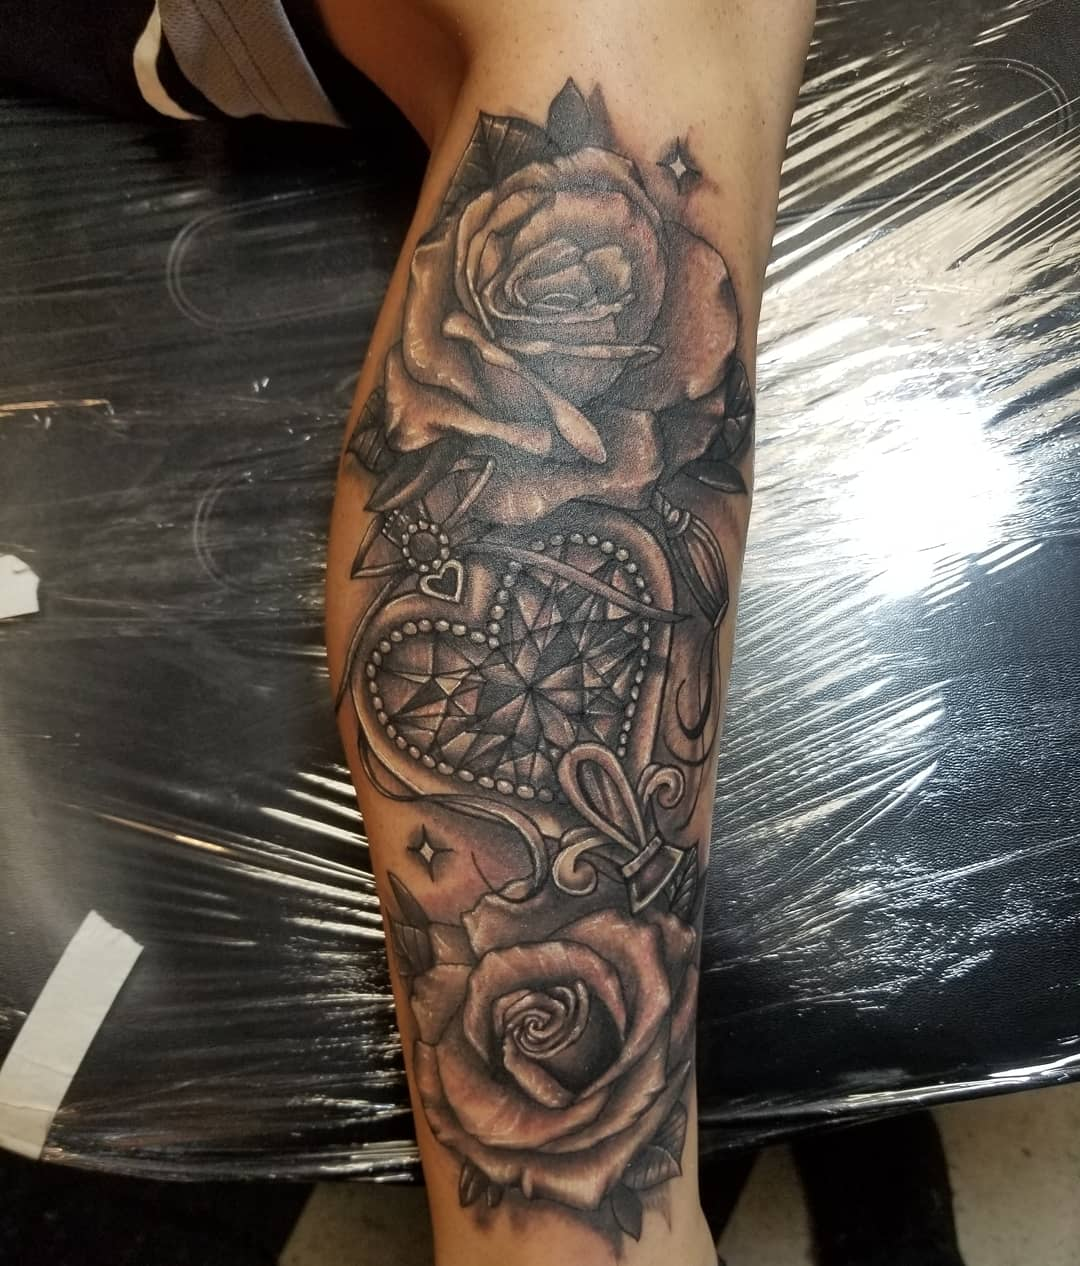 Leg piece by Taylor O' Cuinn of New American Tattoo Company, Baltimore,MD